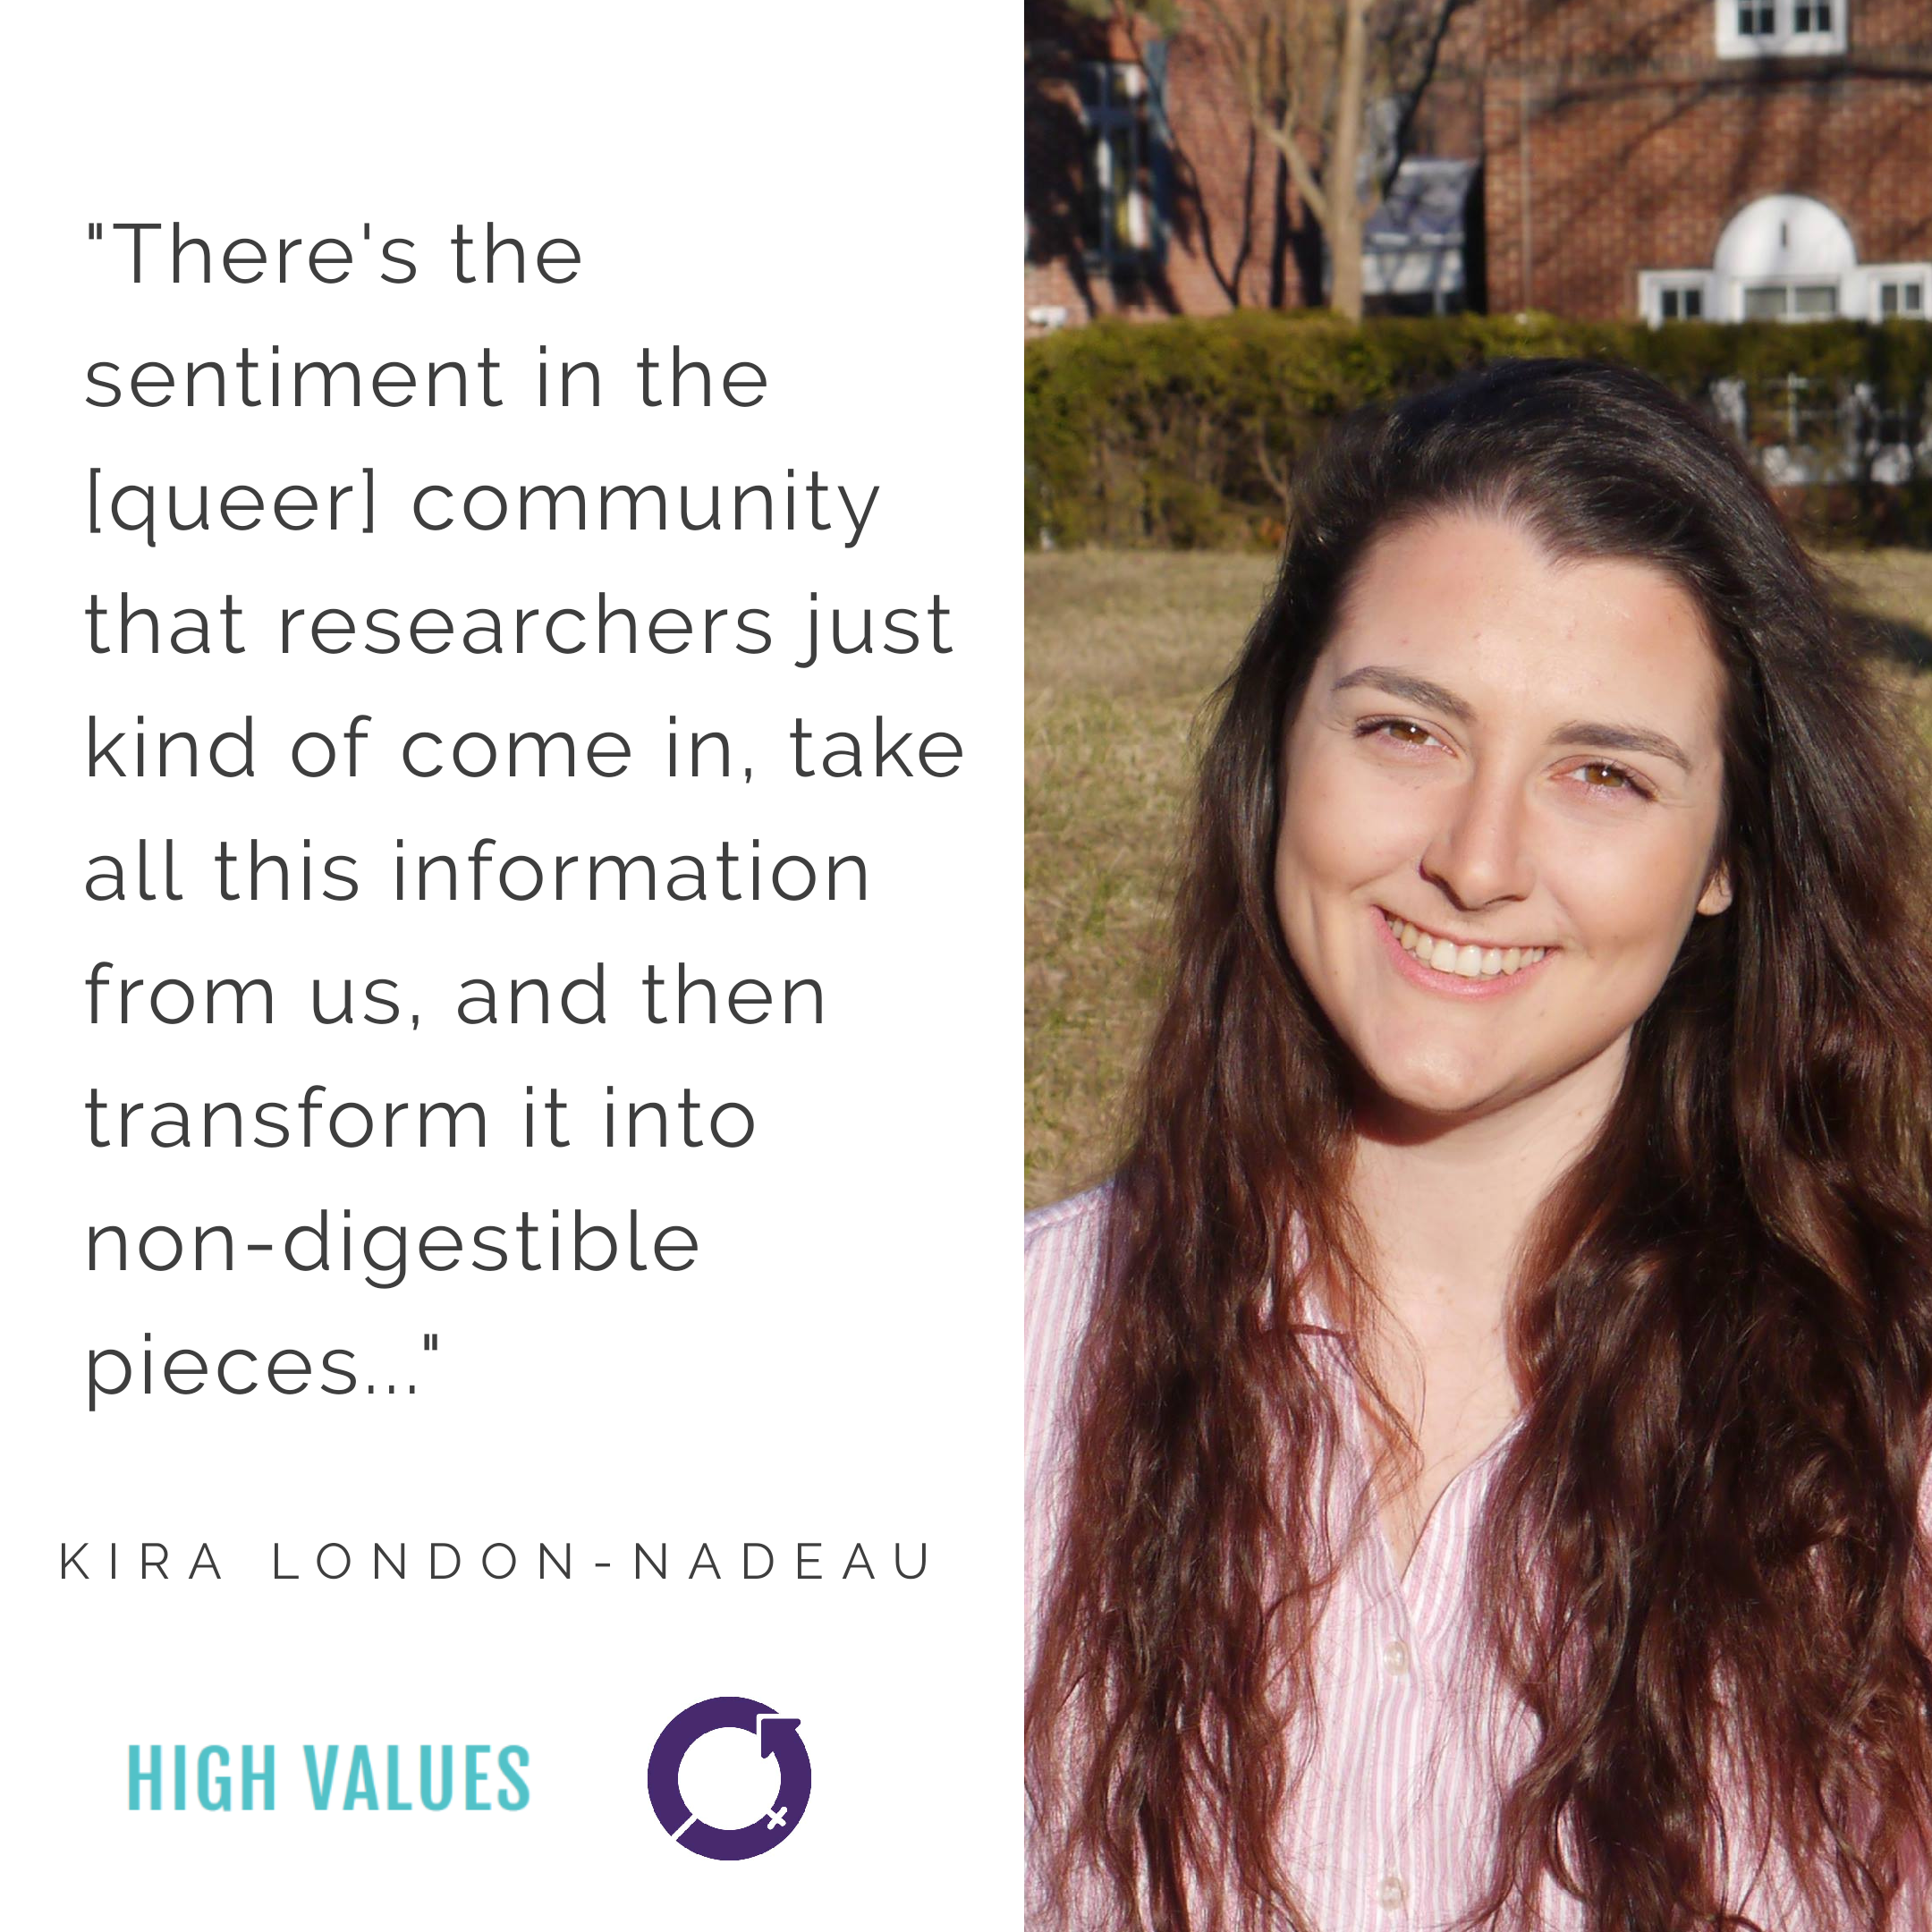 Kira London-Nadeau , Student at University of Montreal   International Women's Day 2019:  The majority of Kira's time is spent in women's spaces and 2SLGBTQ spaces, making most days an inclusive celebration.   Access  full article here .